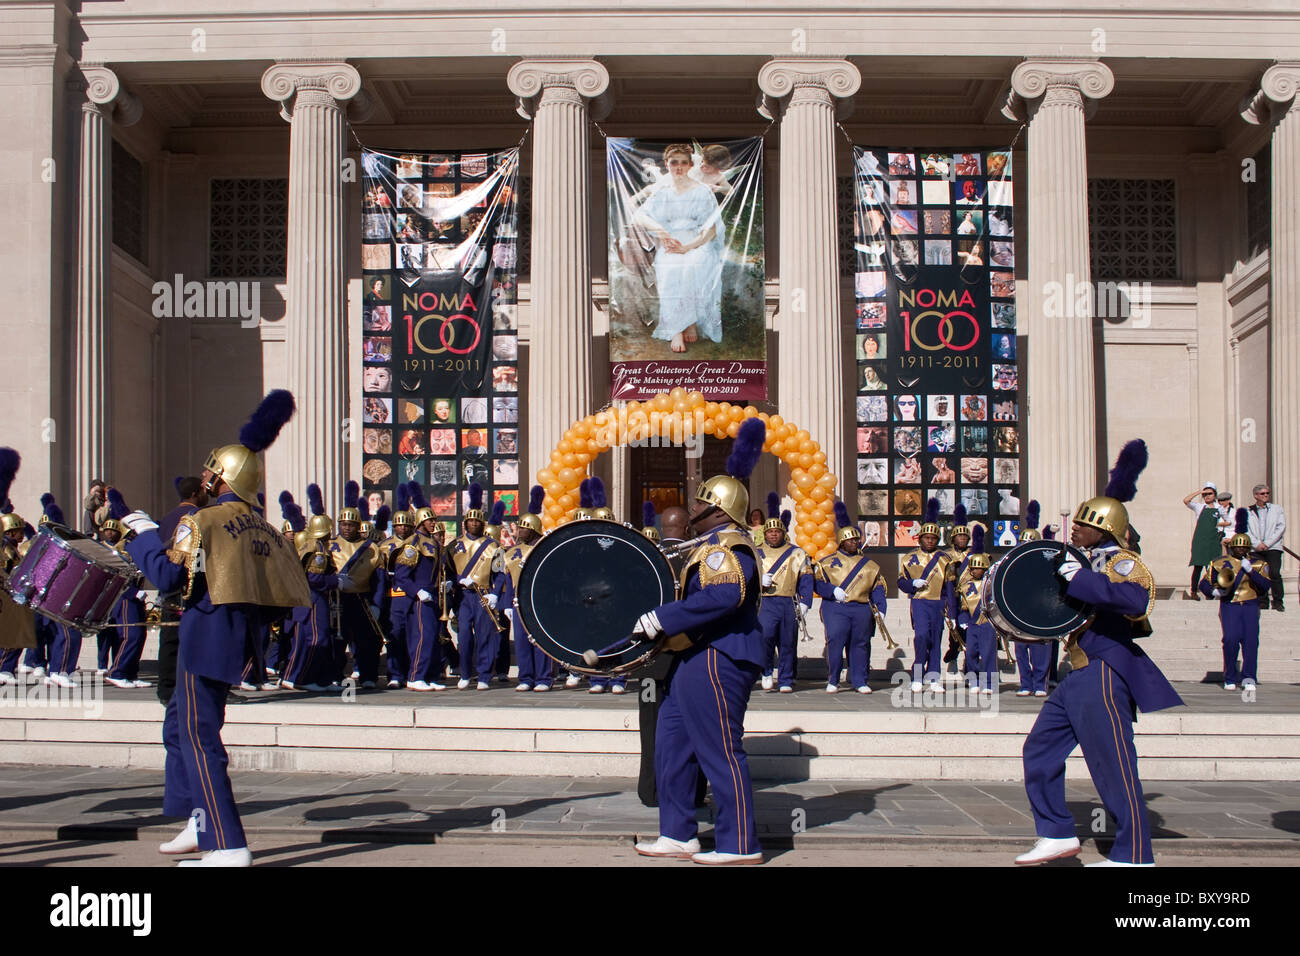 St. Augustine high school marching band commemorating the 100 year anniversary of the New Orleans of Art. - Stock Image